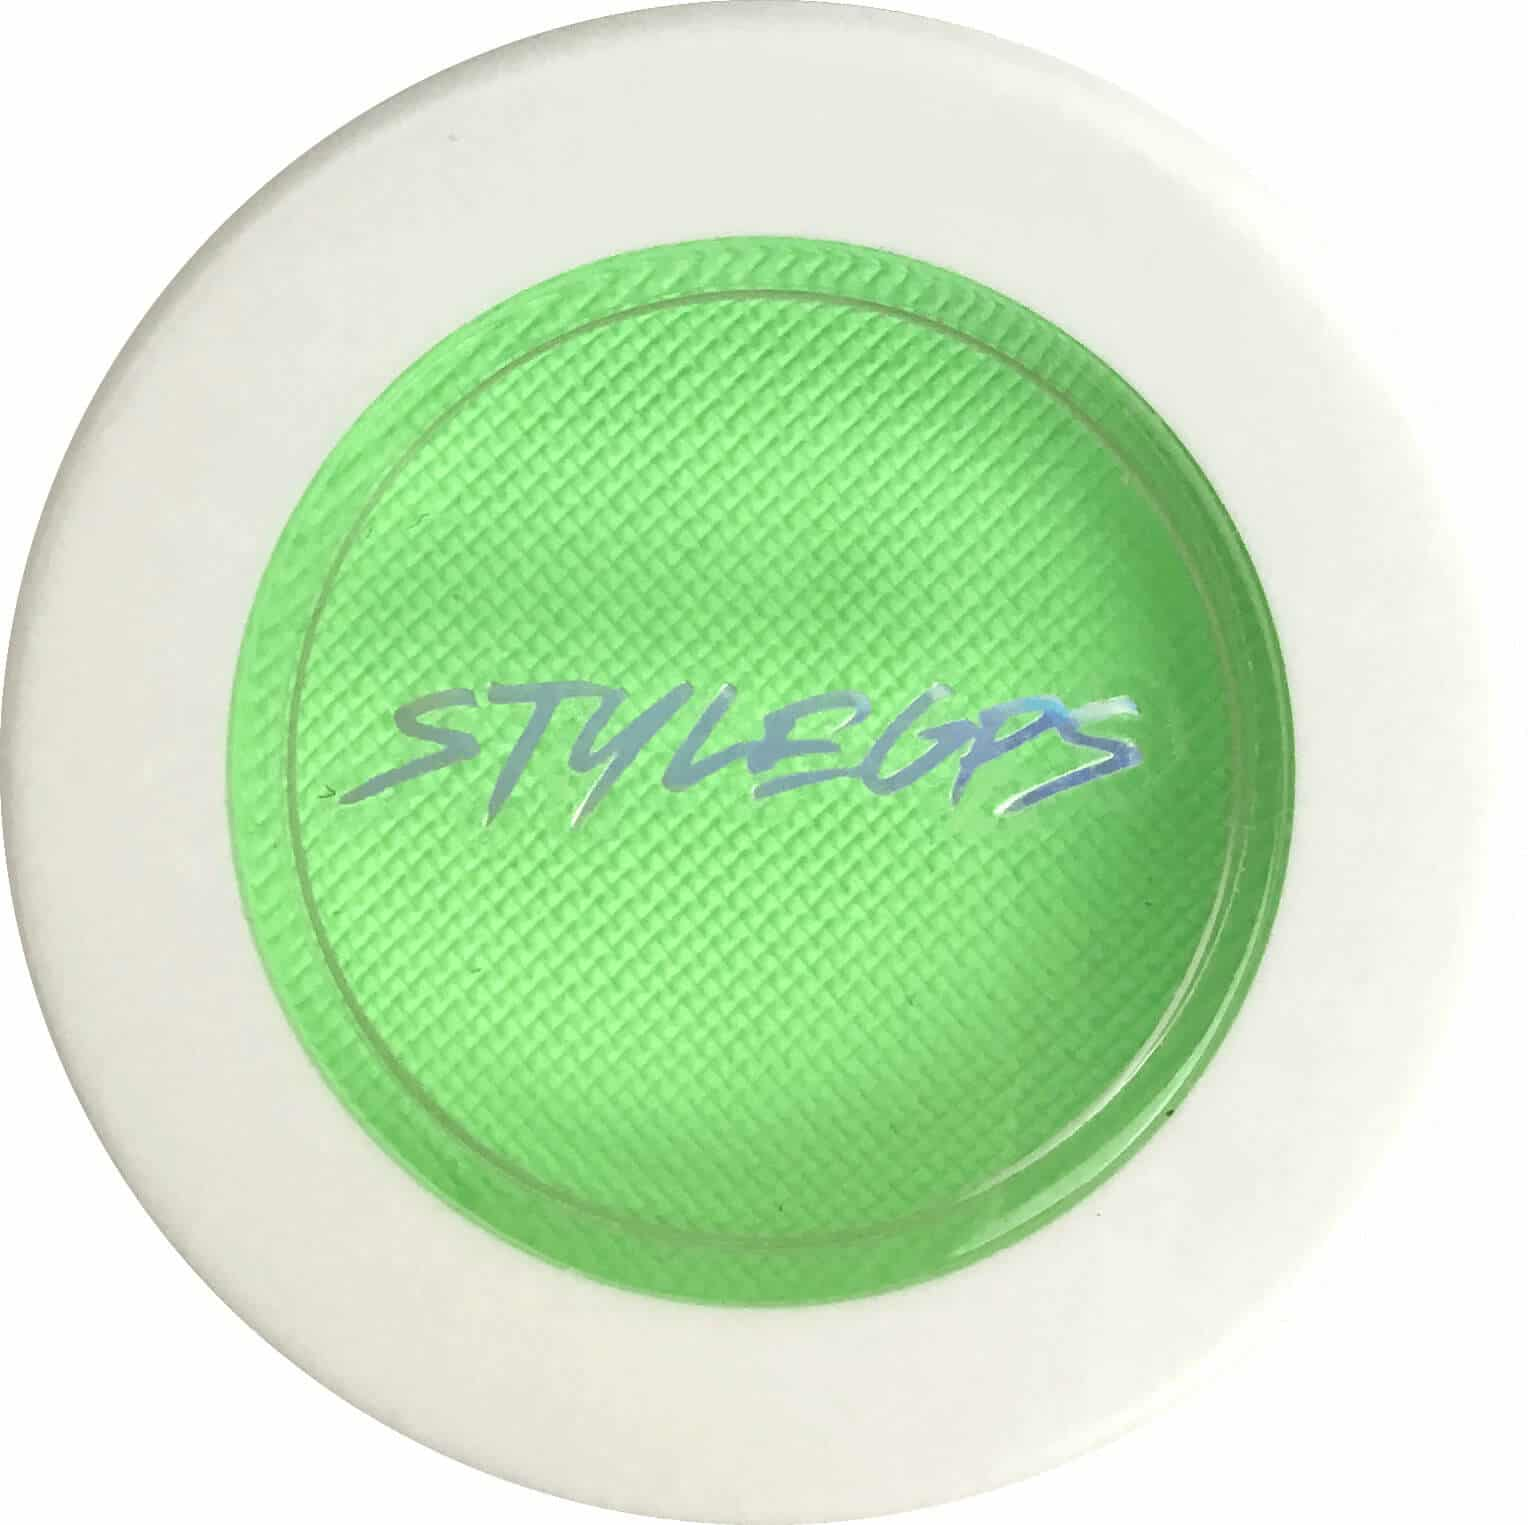 StyleGPS Neon Green Glow Trip Liner. The Neon Green Glow Trip Liner is a bright green color The color liner is a water-activated UV eyeliner. This colored eyeliner is a green eyeliner. This pink eye makeup is designed to help you create green eyeliner looks. or green eye makeup looks